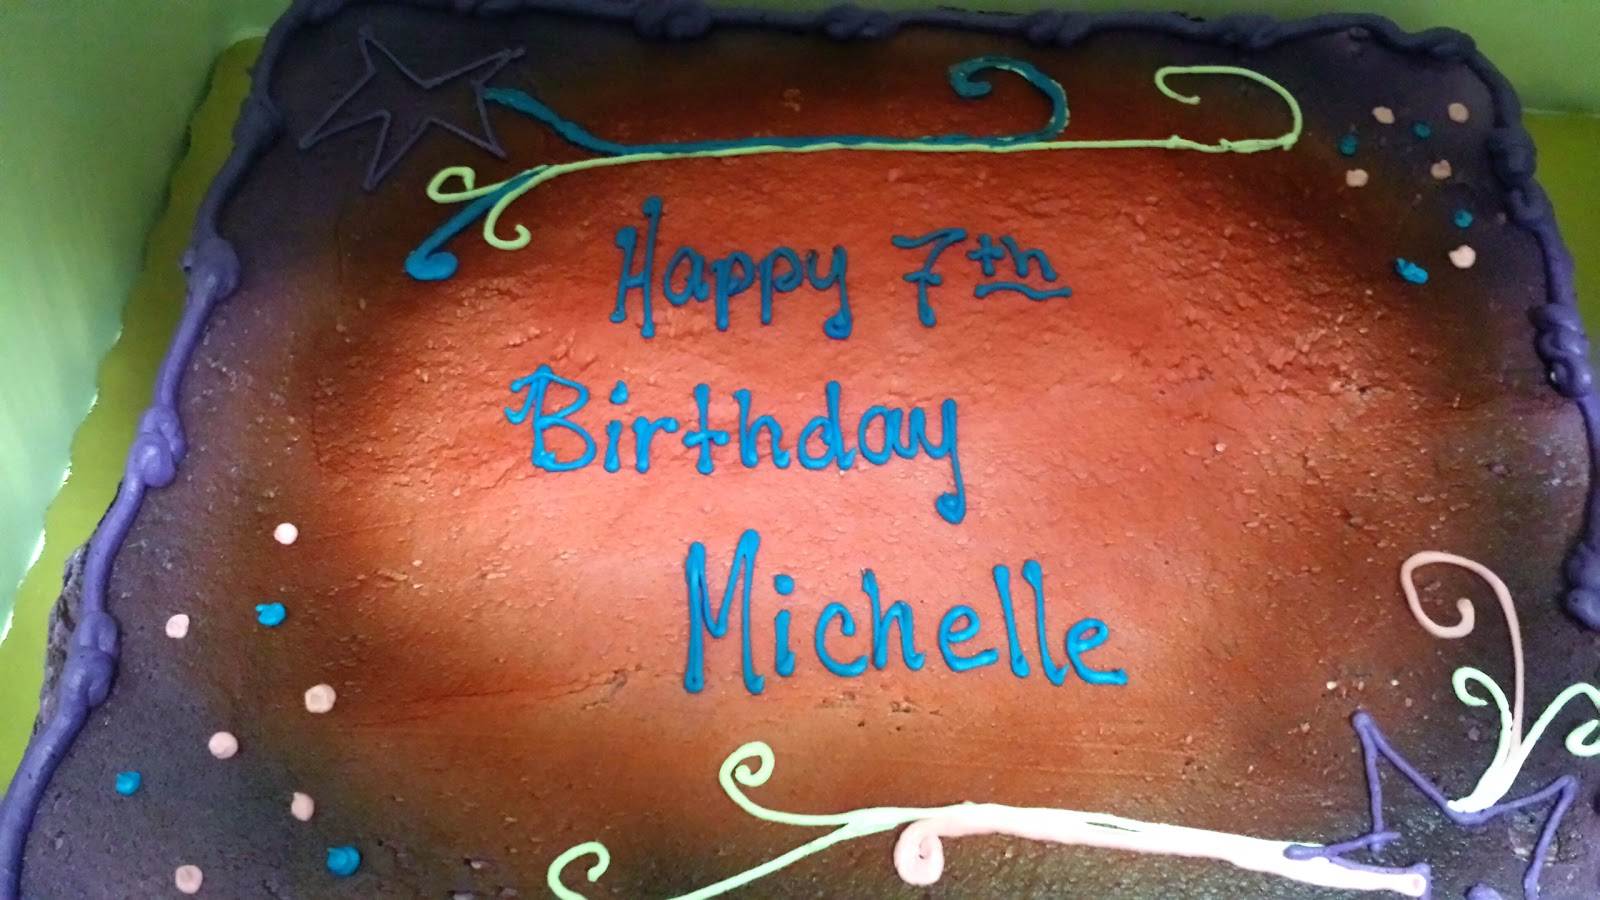 Happy 7th Birthday Michelle! via ProductReviewMom.com